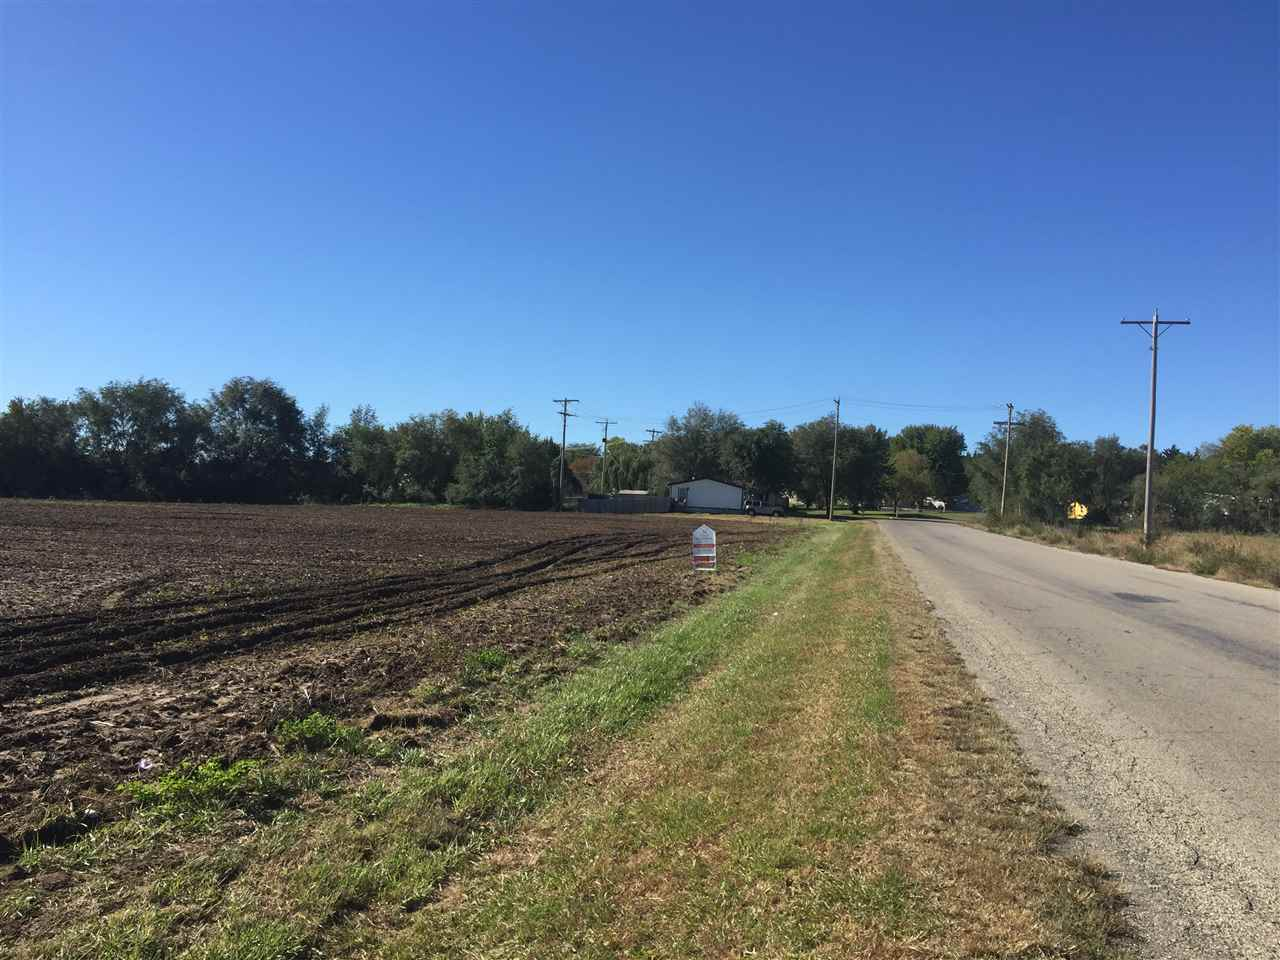 Flat land, close to Airport, close to Hwy 77.  Great spot for Mobile Home Park, Storage Units, Tiny Home development,  Crops belong to farmer.